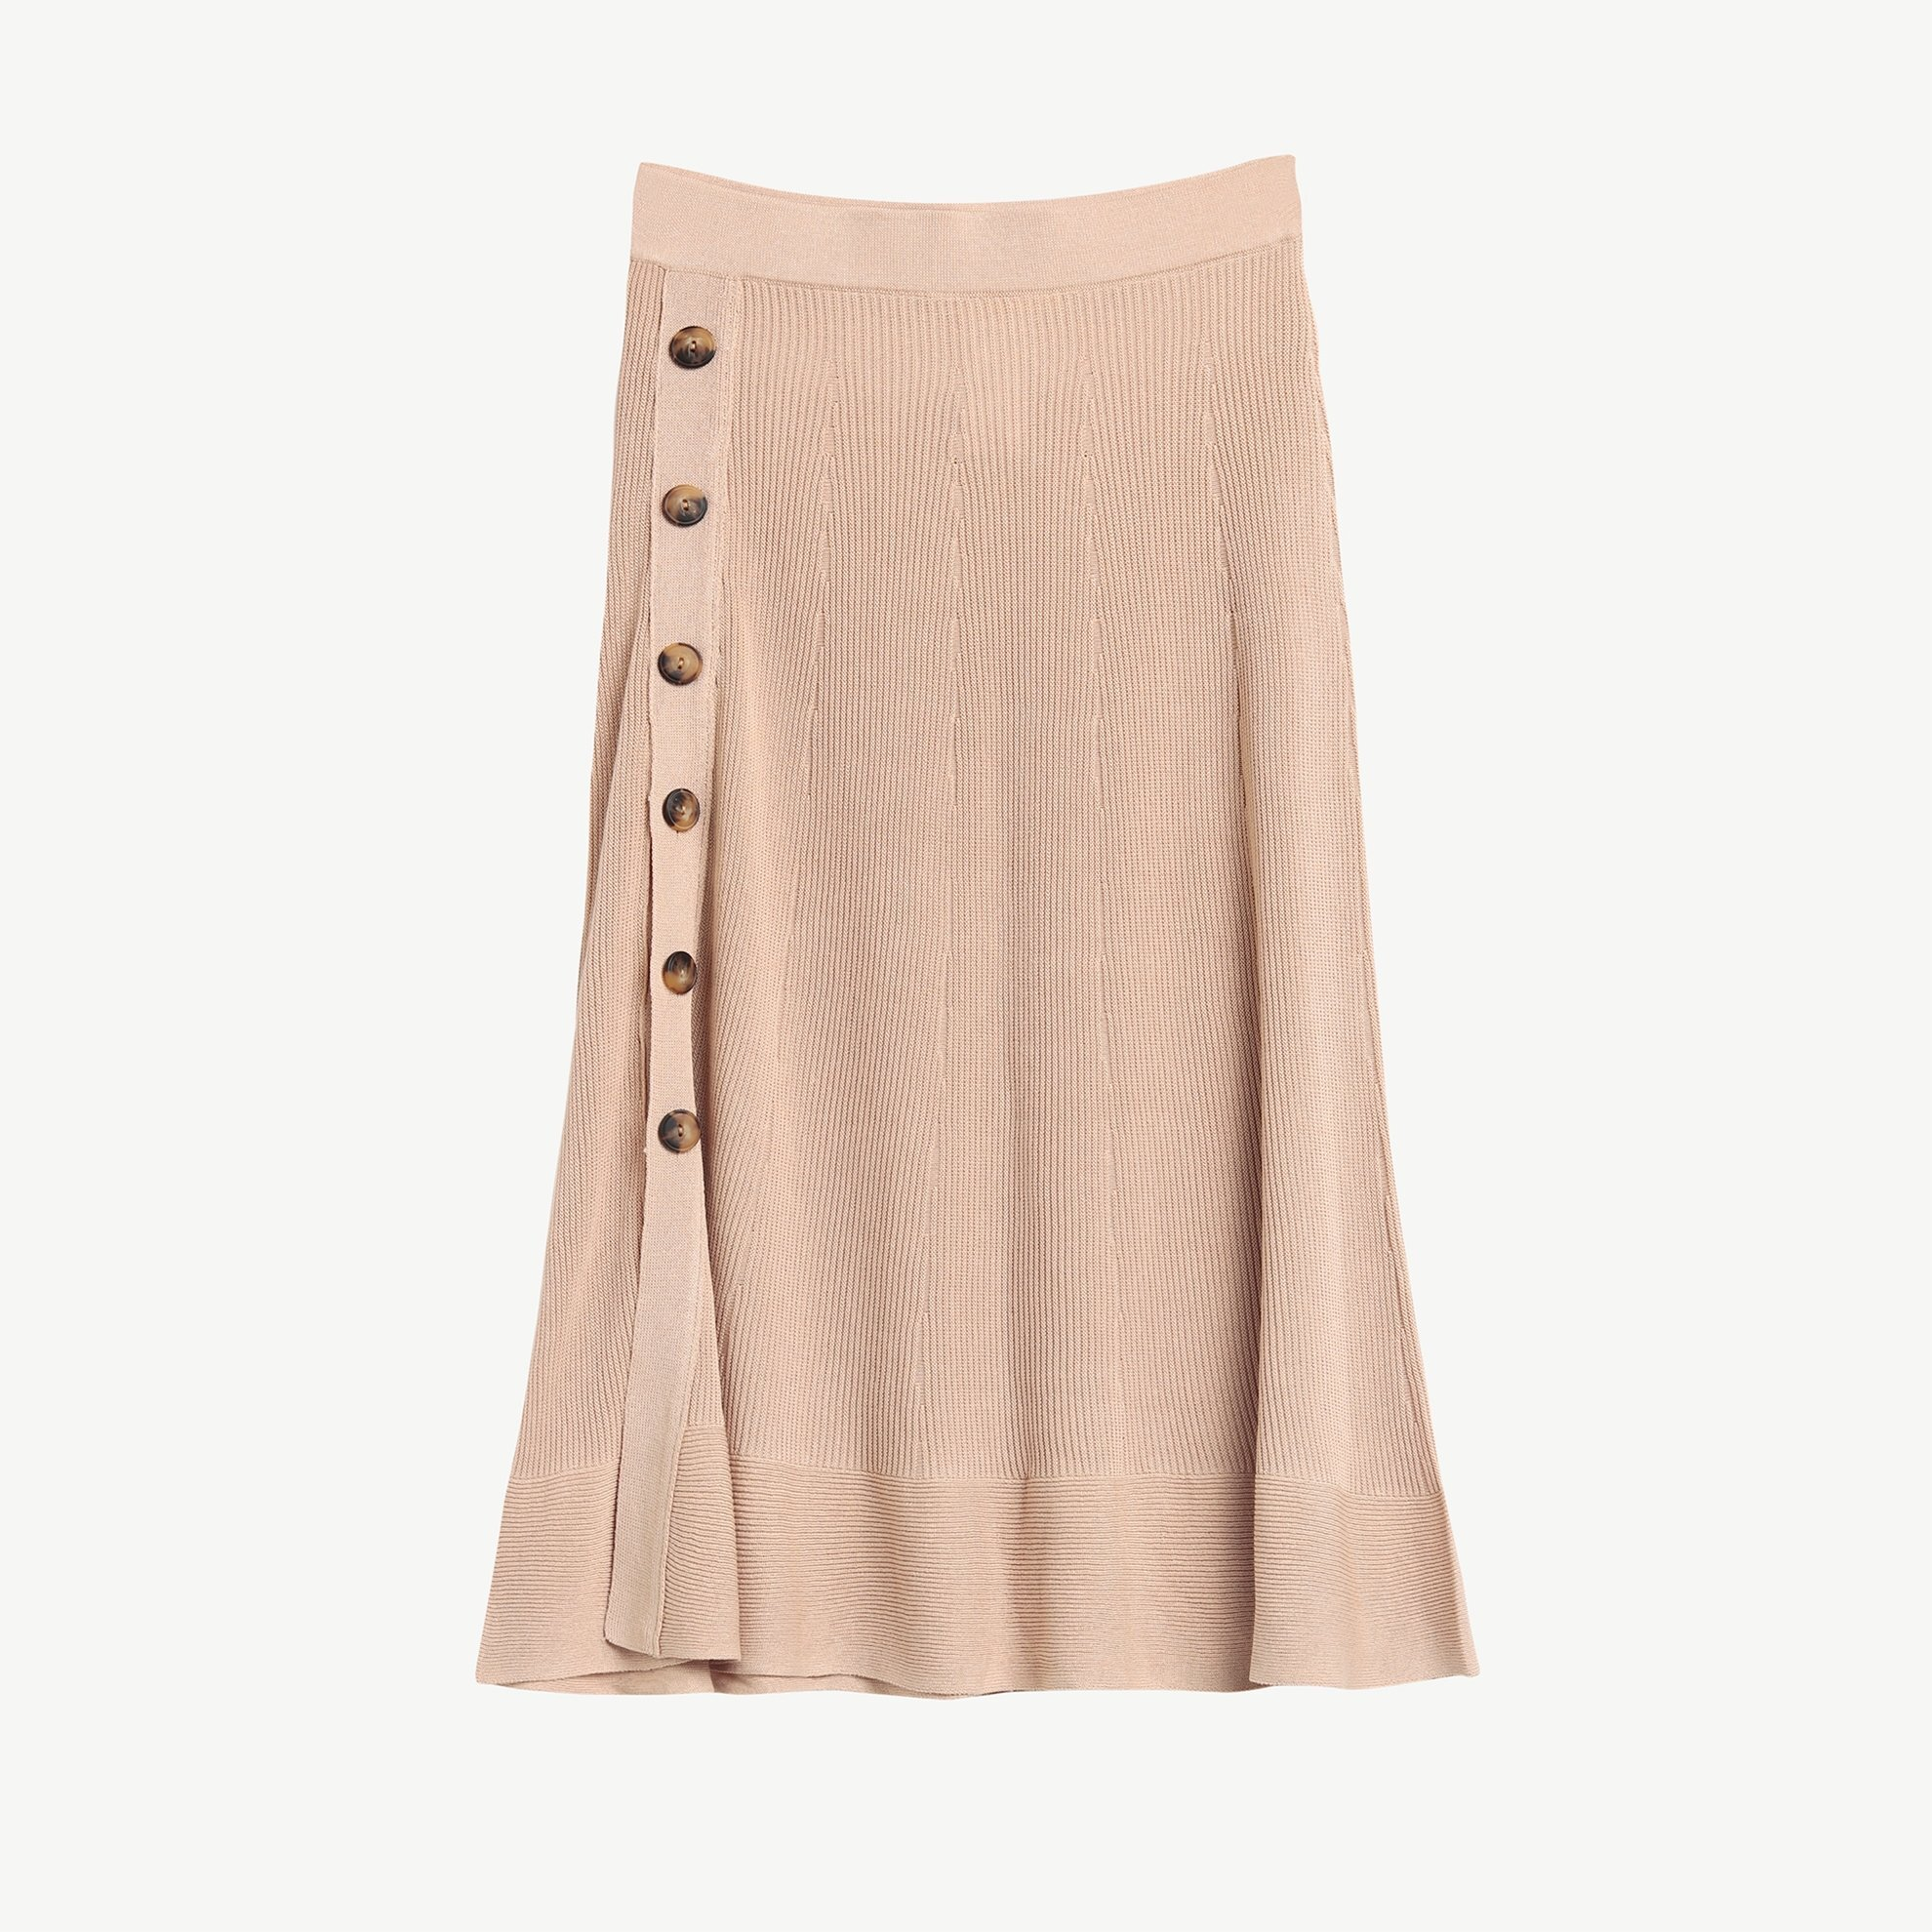 Button Detail Knit Skirt